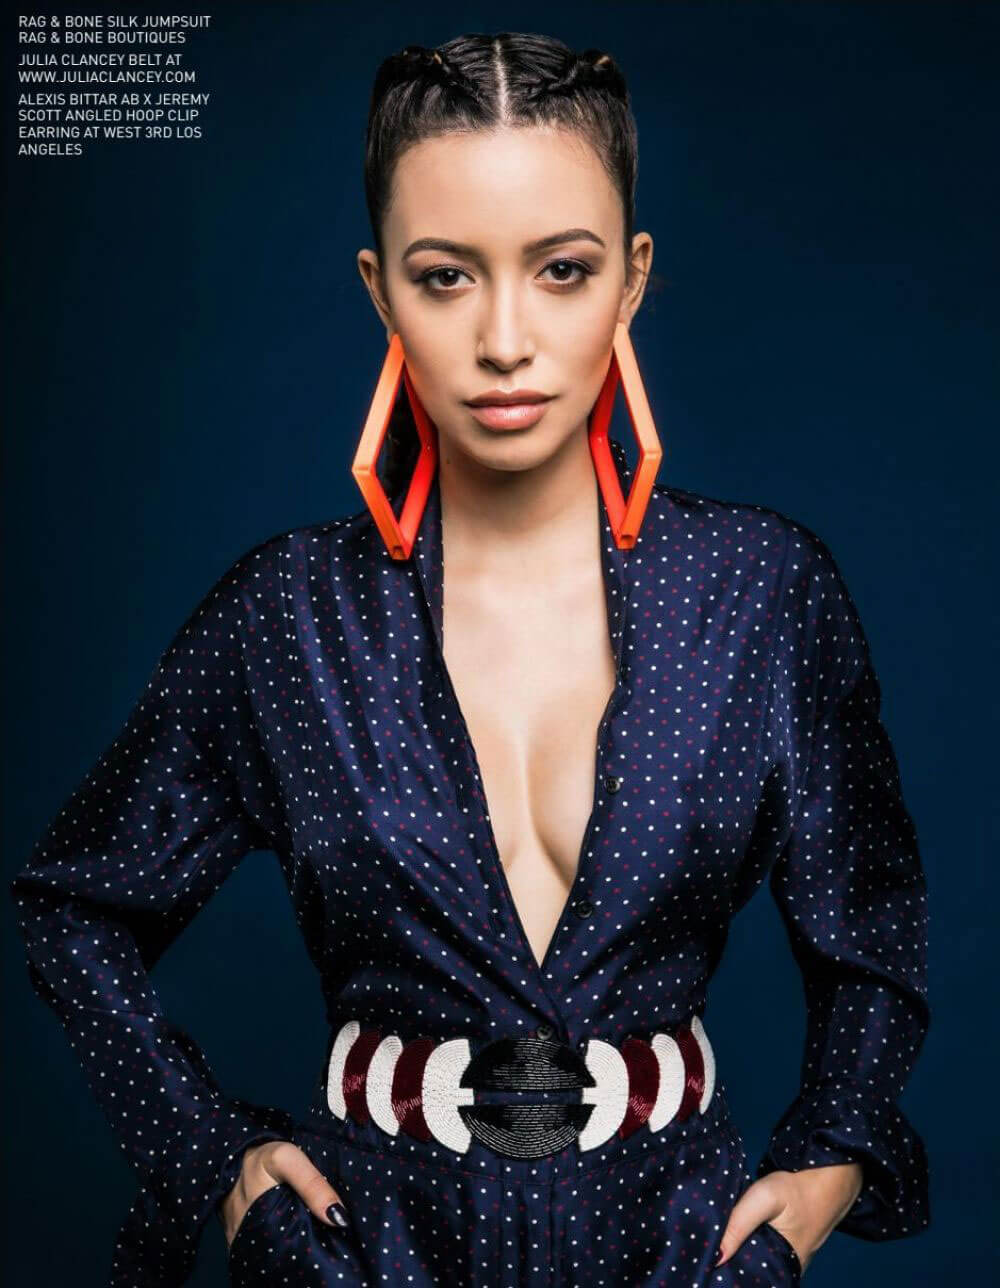 Christian Serratos in Bello Magazine Photoshoot 2017